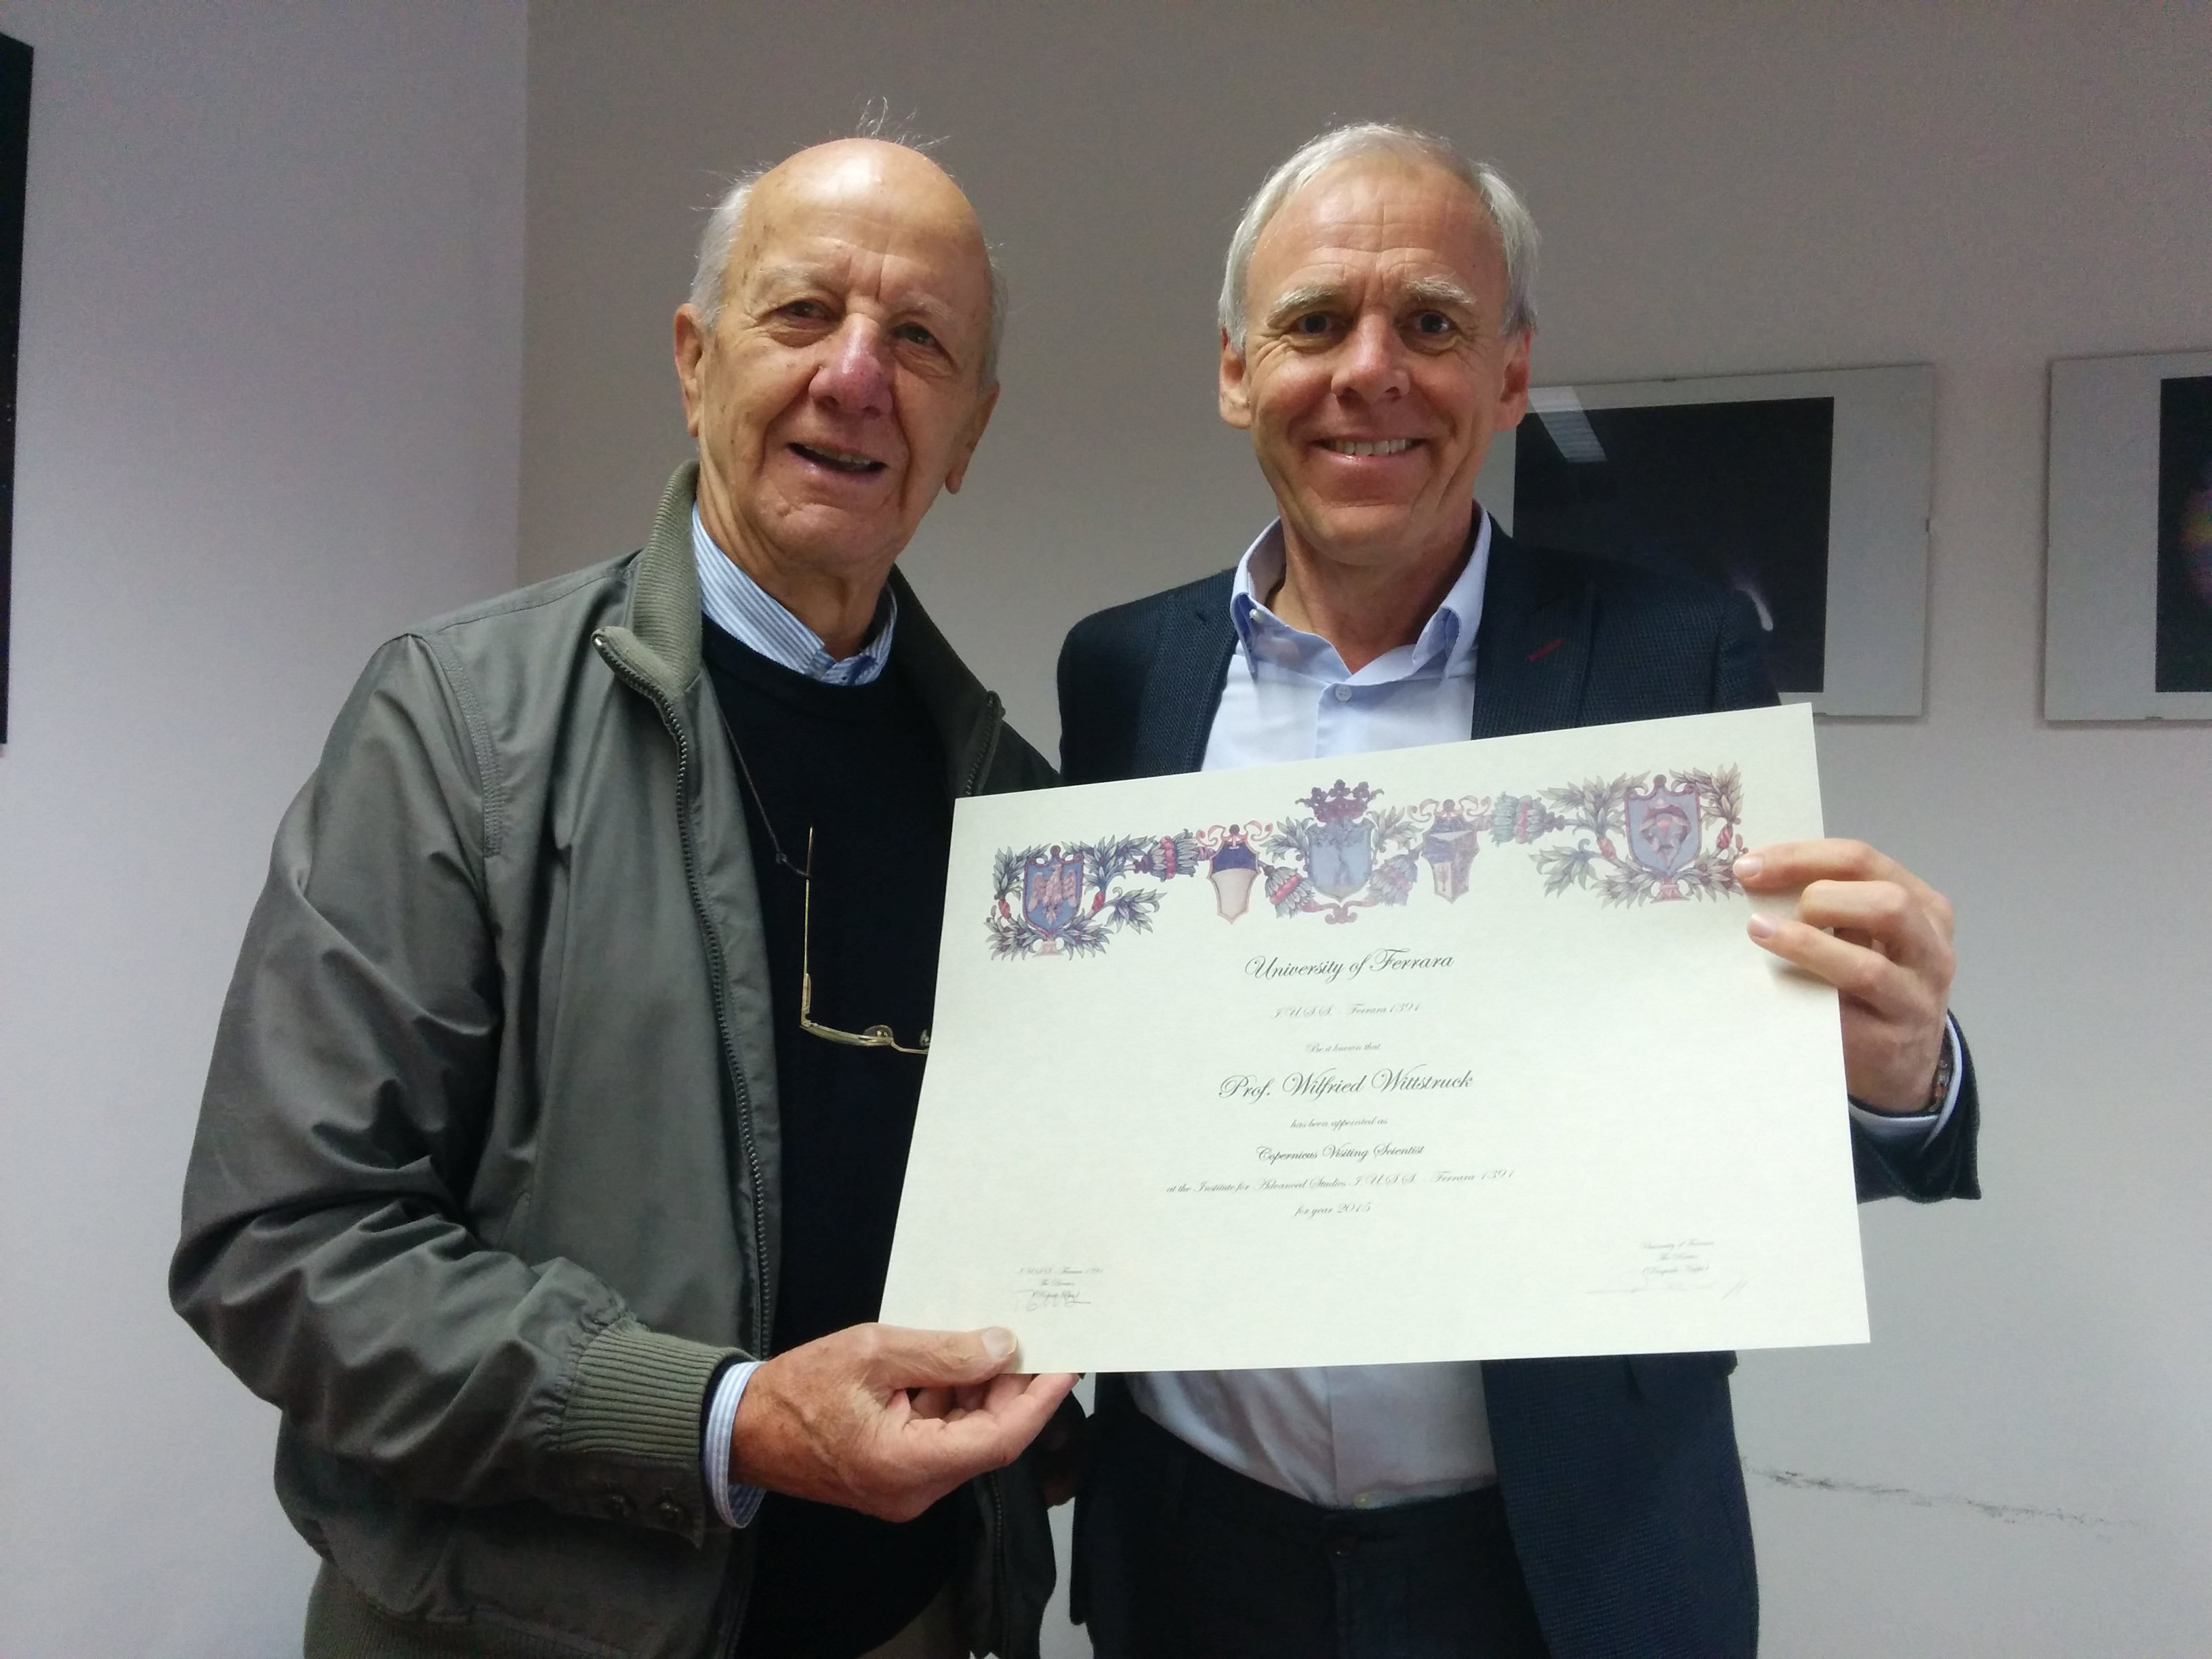 Consegna diploma_Prof. Wittstruck